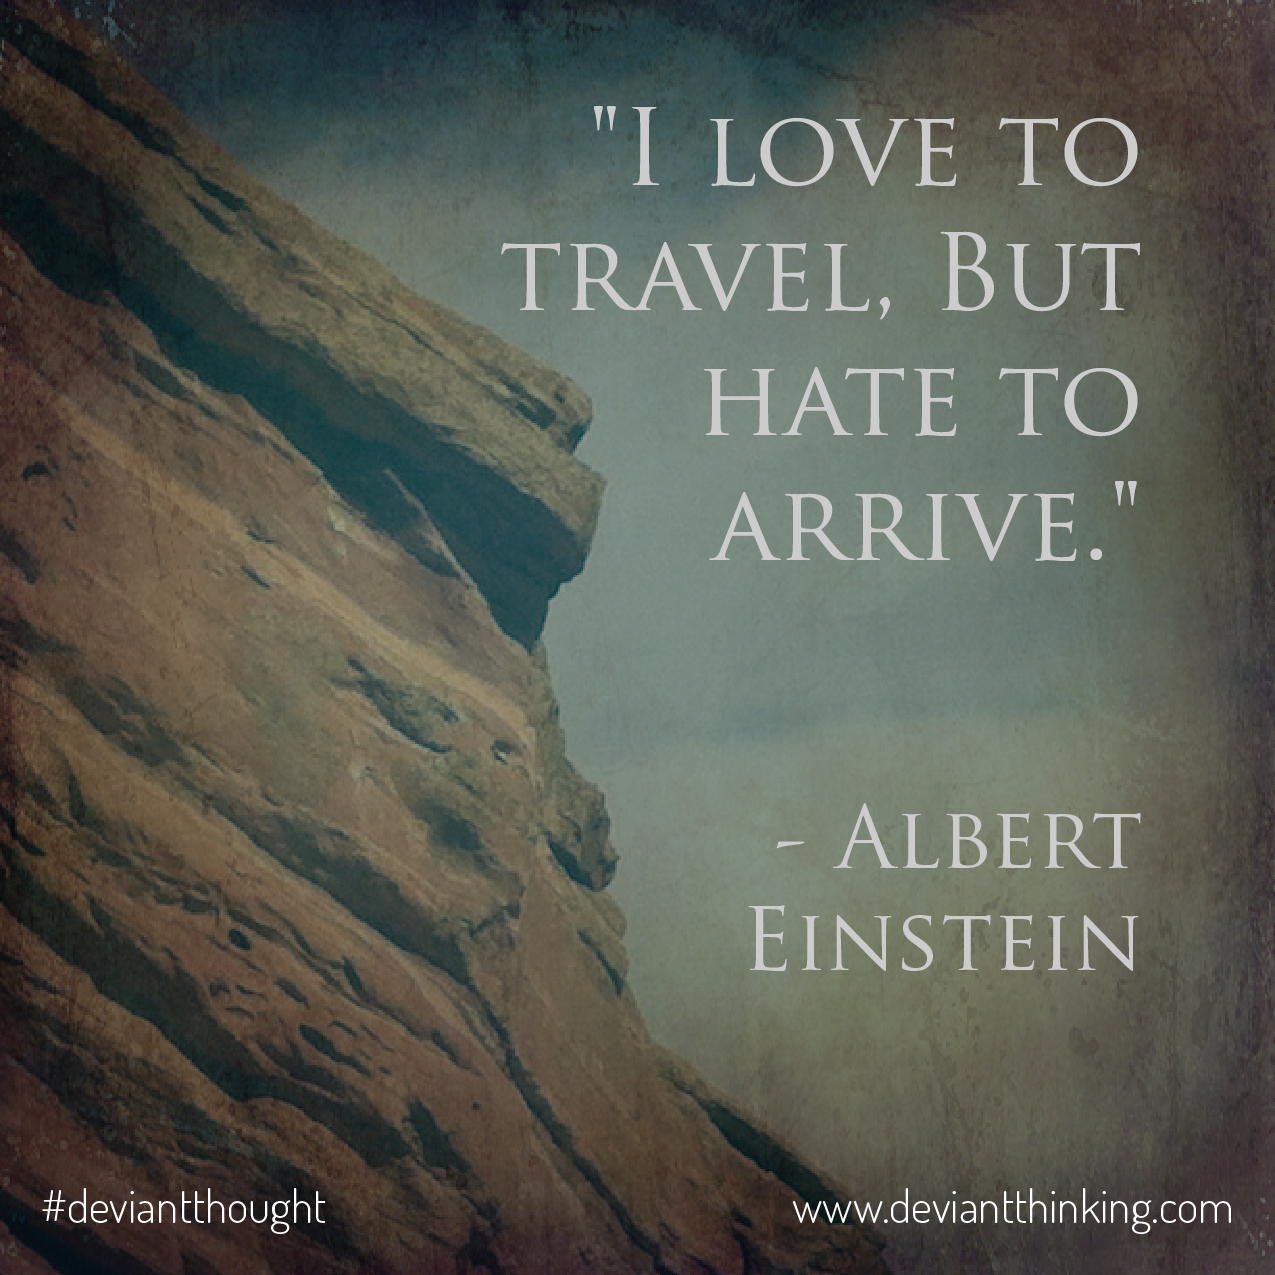 I love to travel, but I hate to arrive. -Albert Einstein